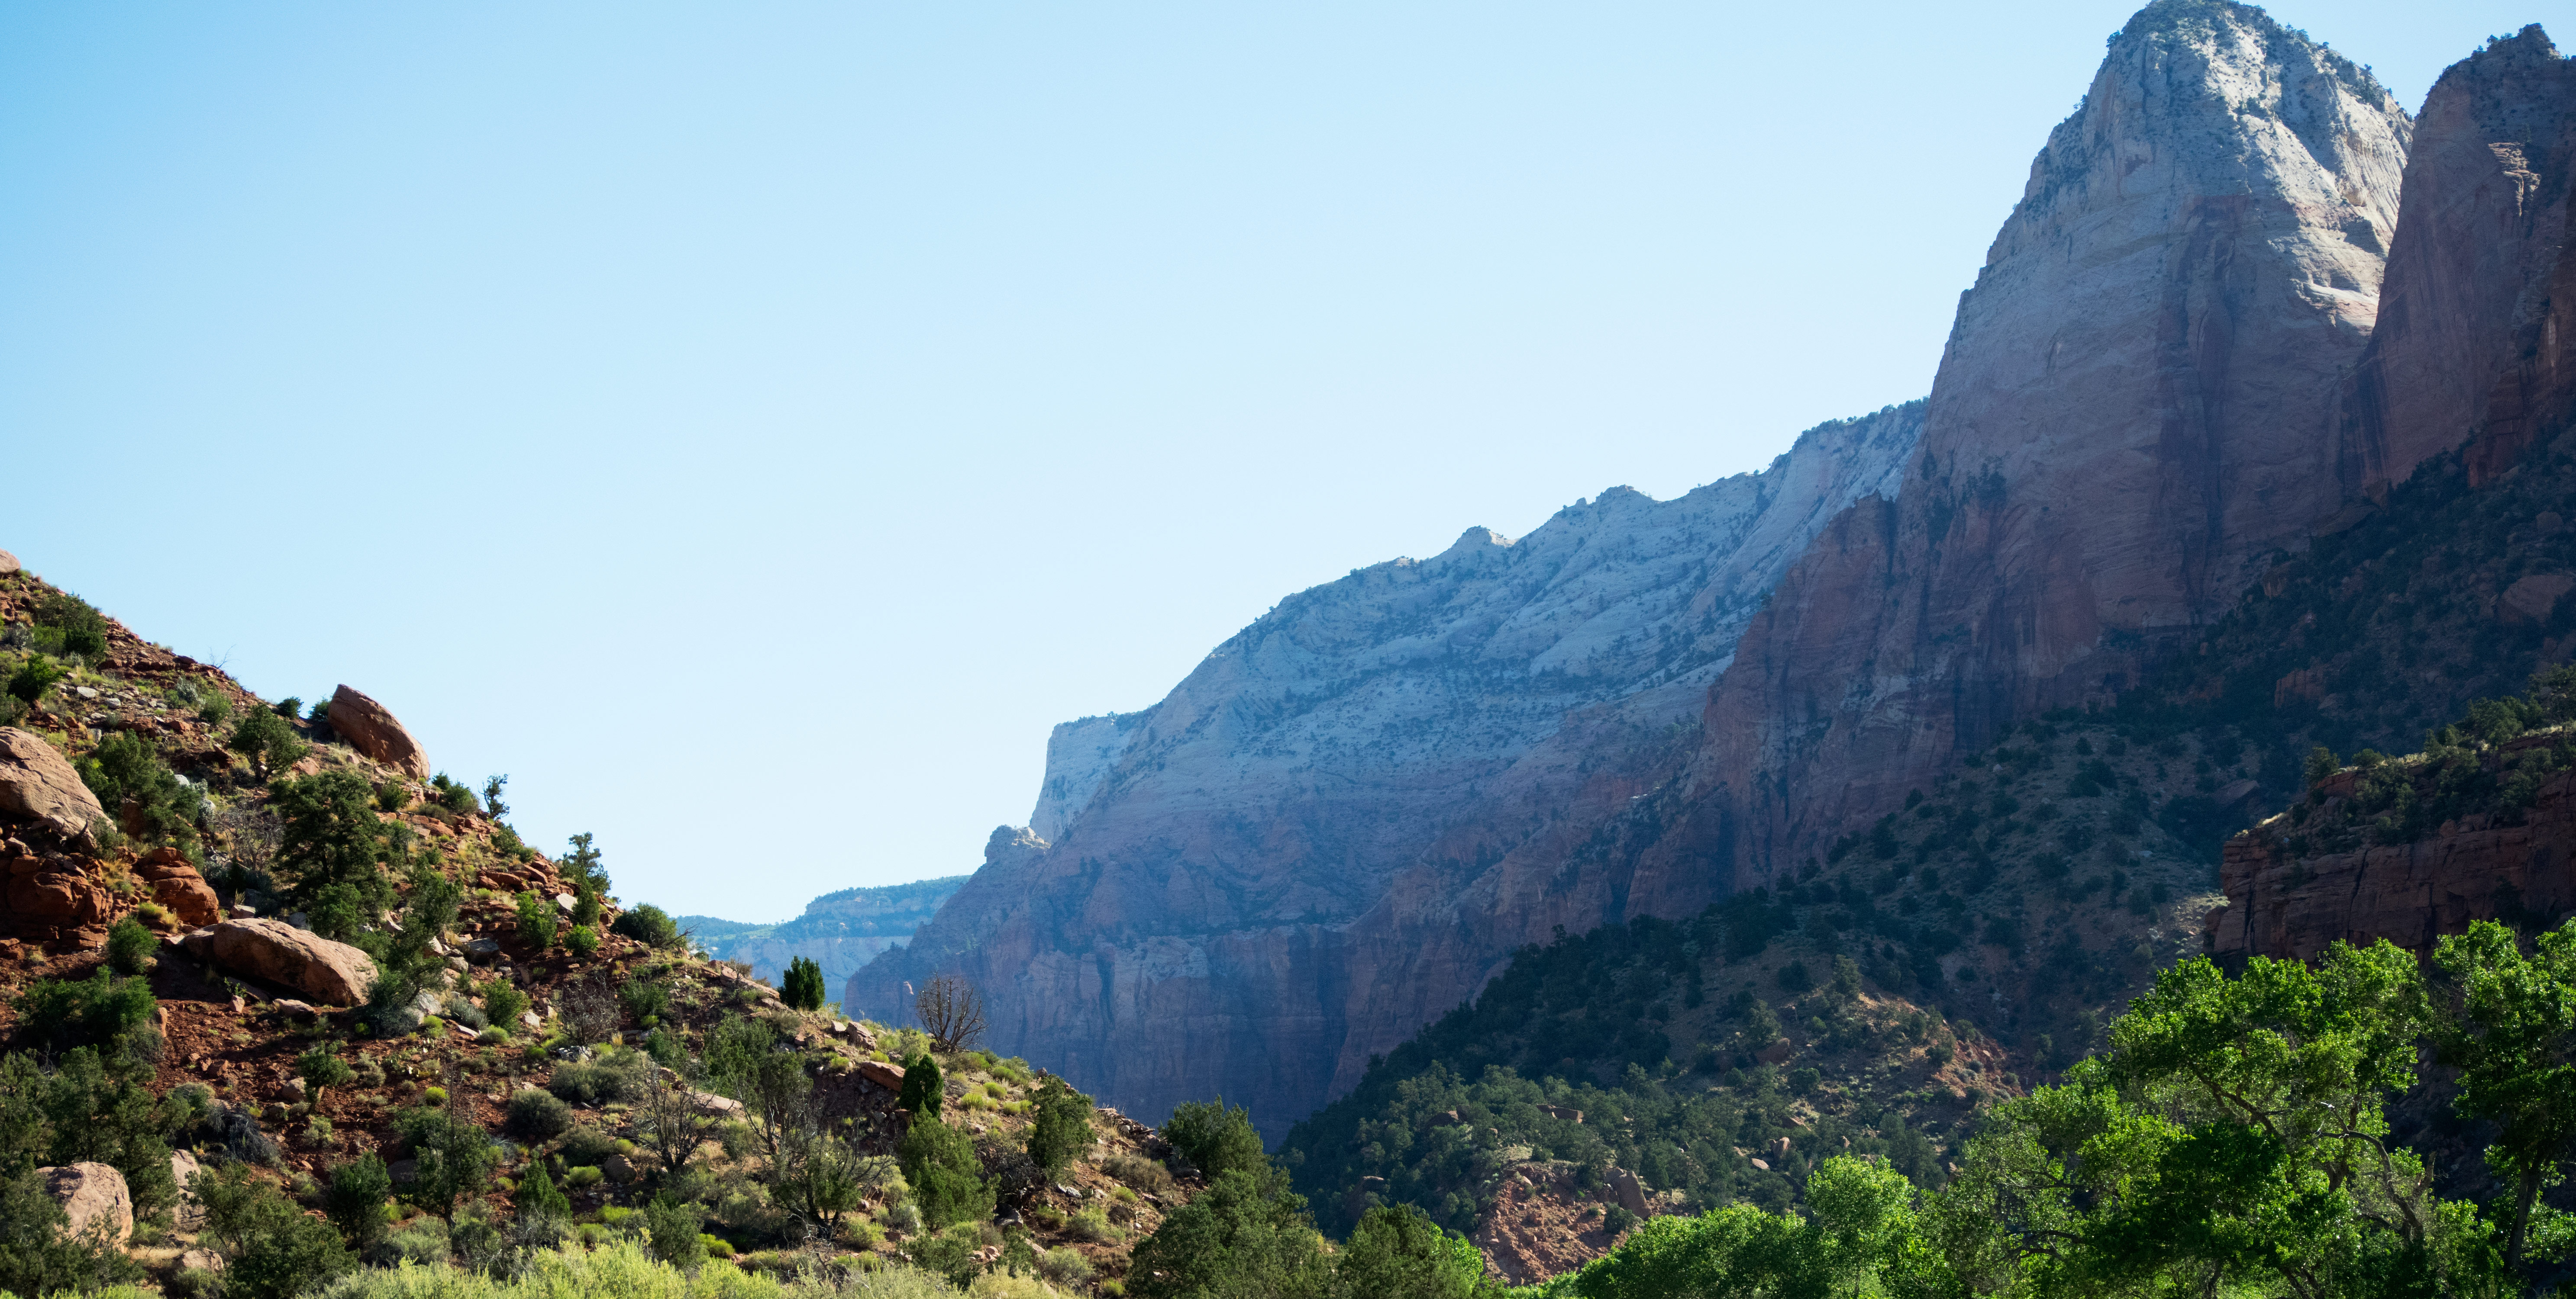 Photo Tuesday: Landscapes of Zion National Park